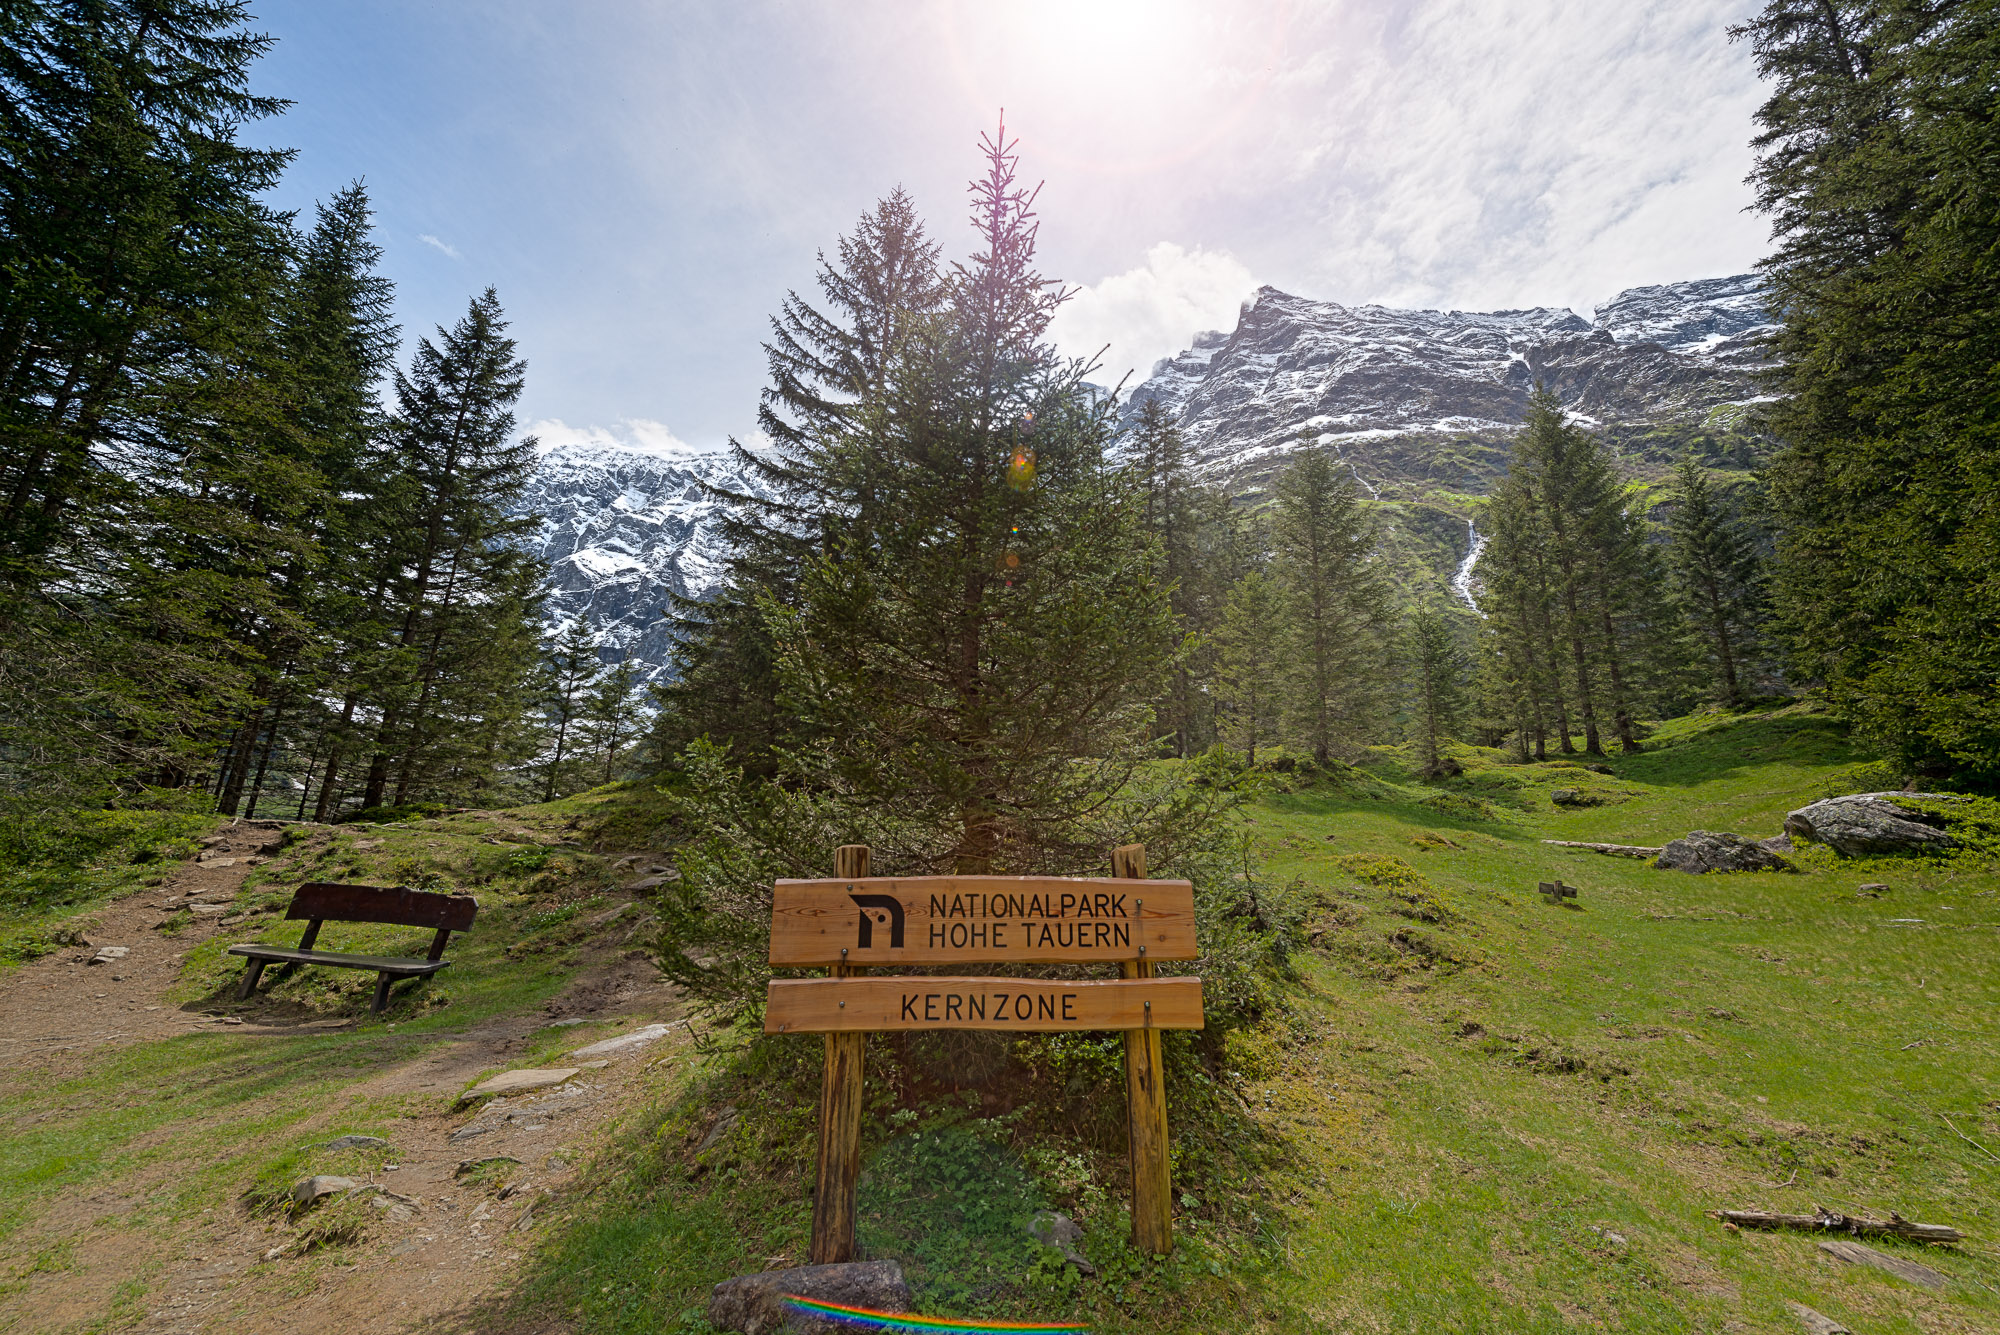 Hintersee-Hohe-Tauern_3056_5_4_3_2_HDR projects-Bearbeitet